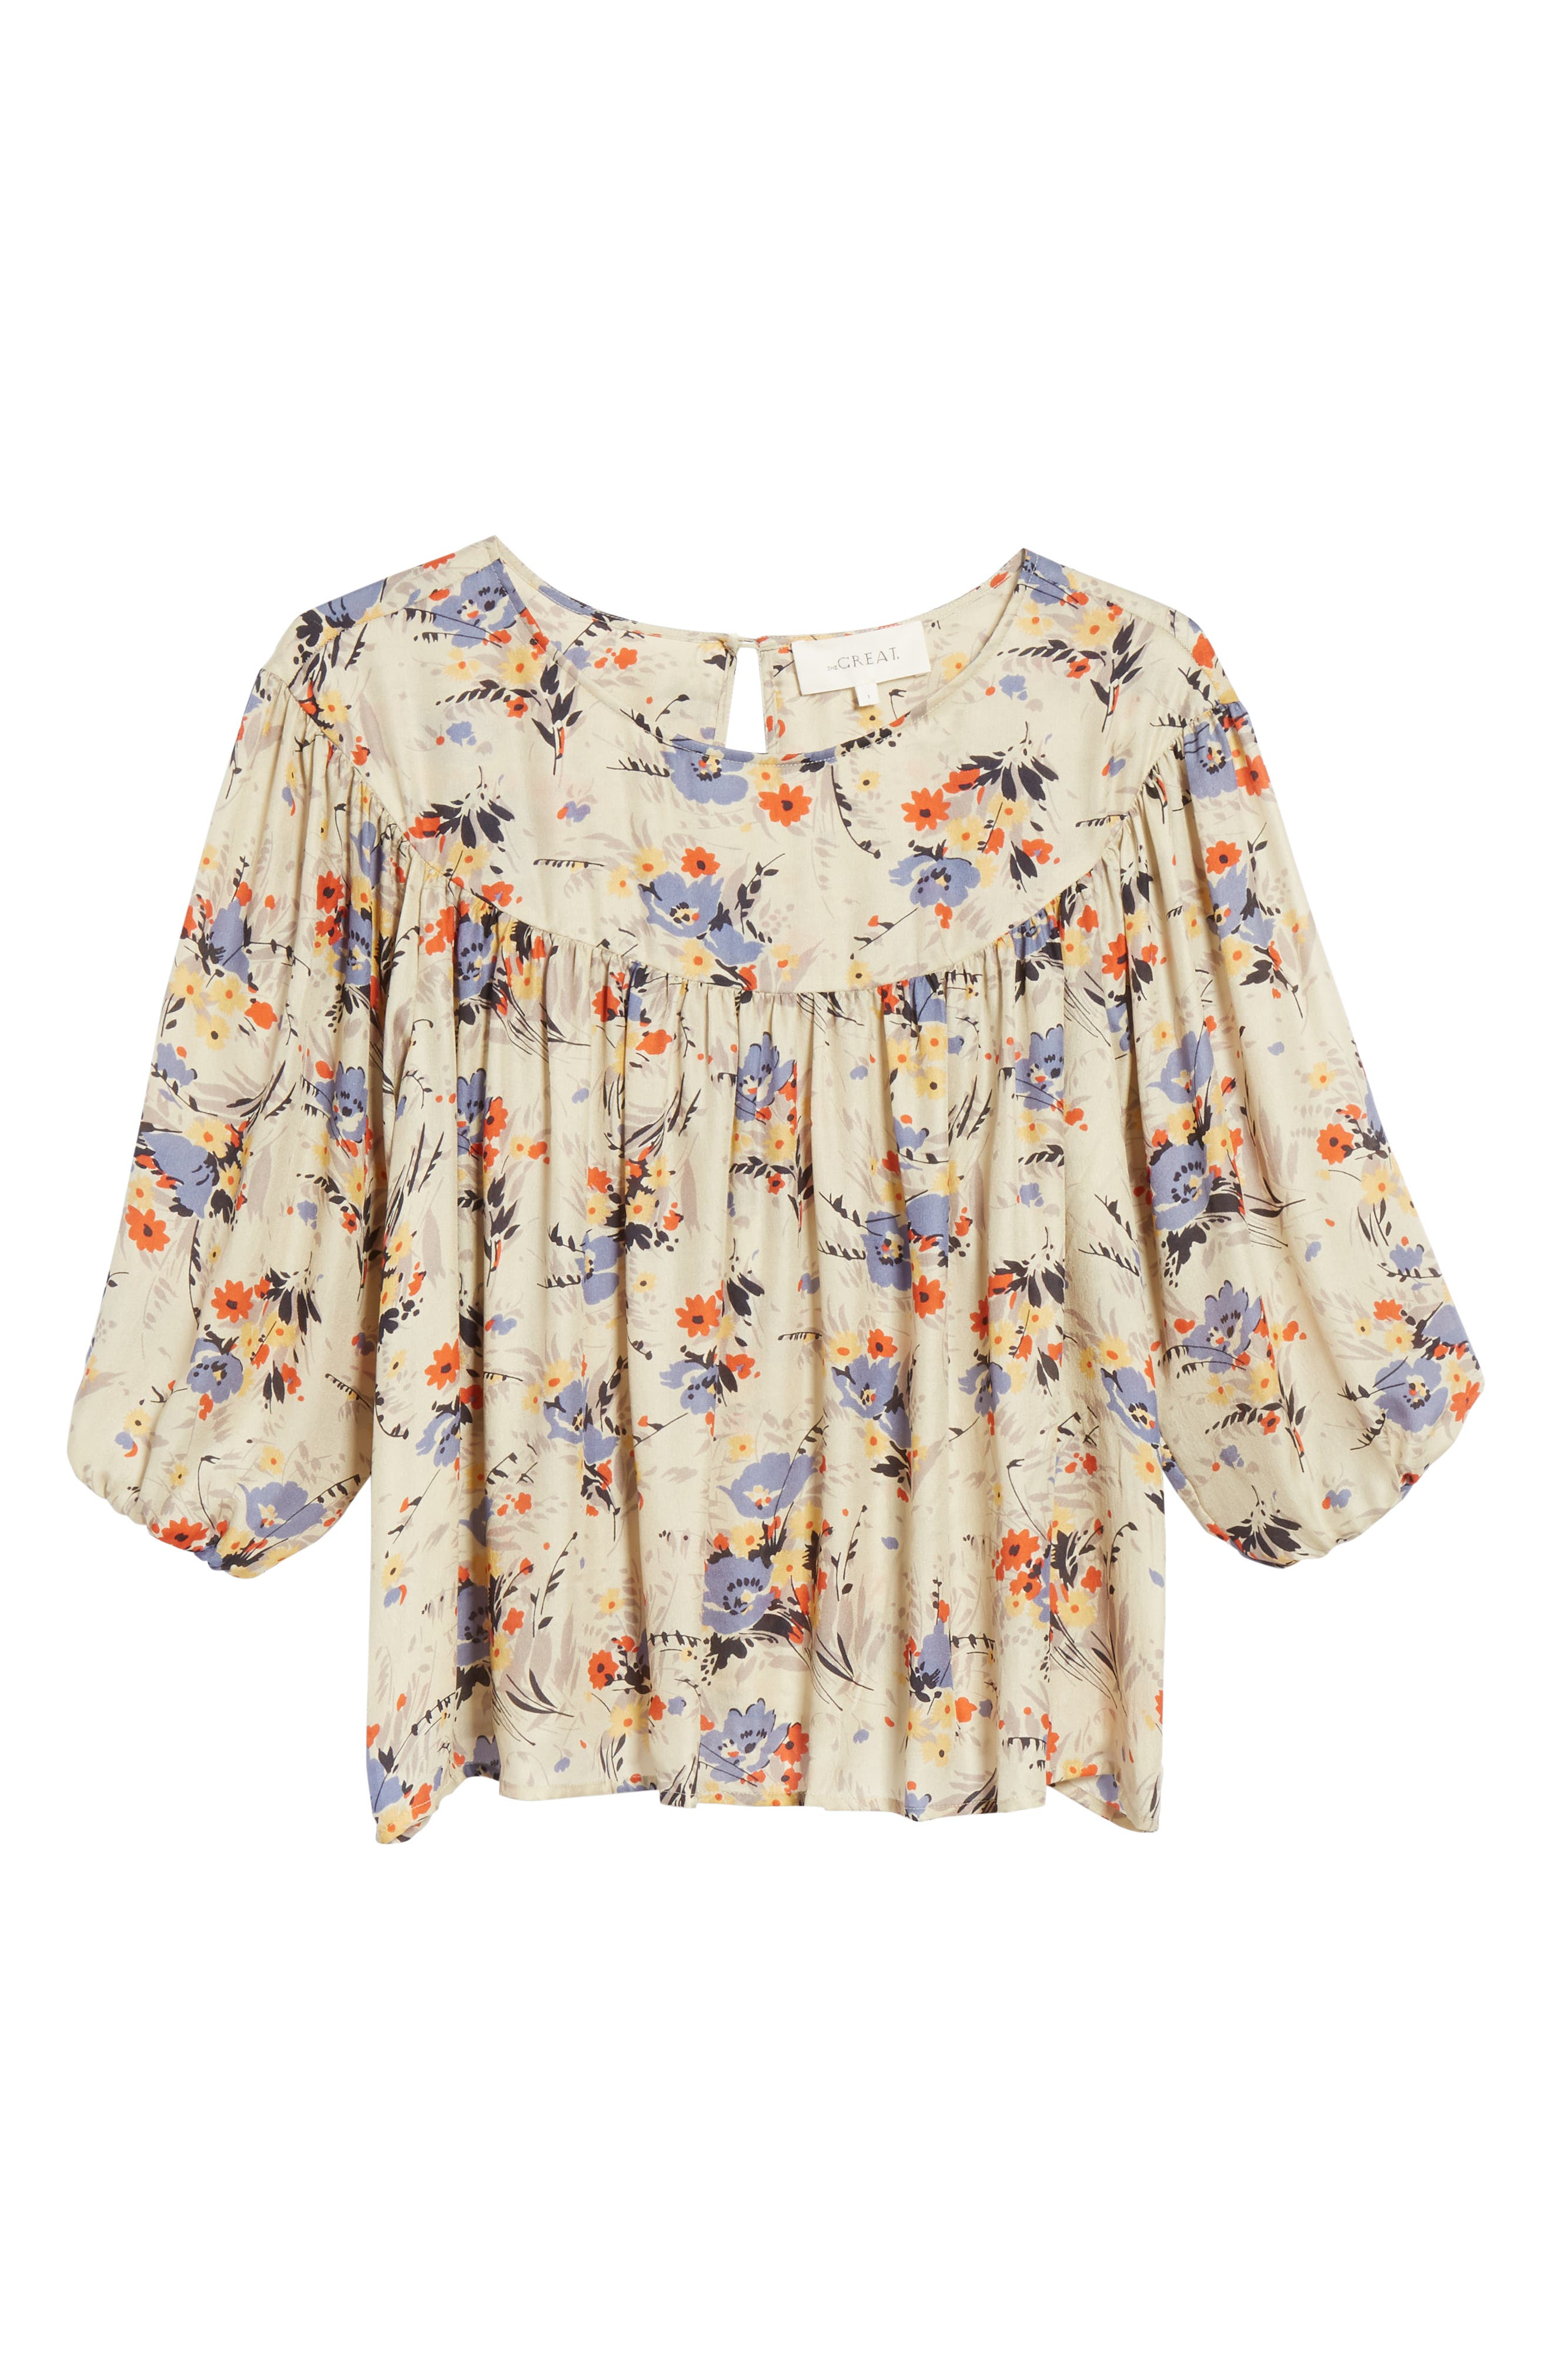 Duskfall Silk Blouse,                             Alternate thumbnail 6, color,                             WOODLAND FLORAL